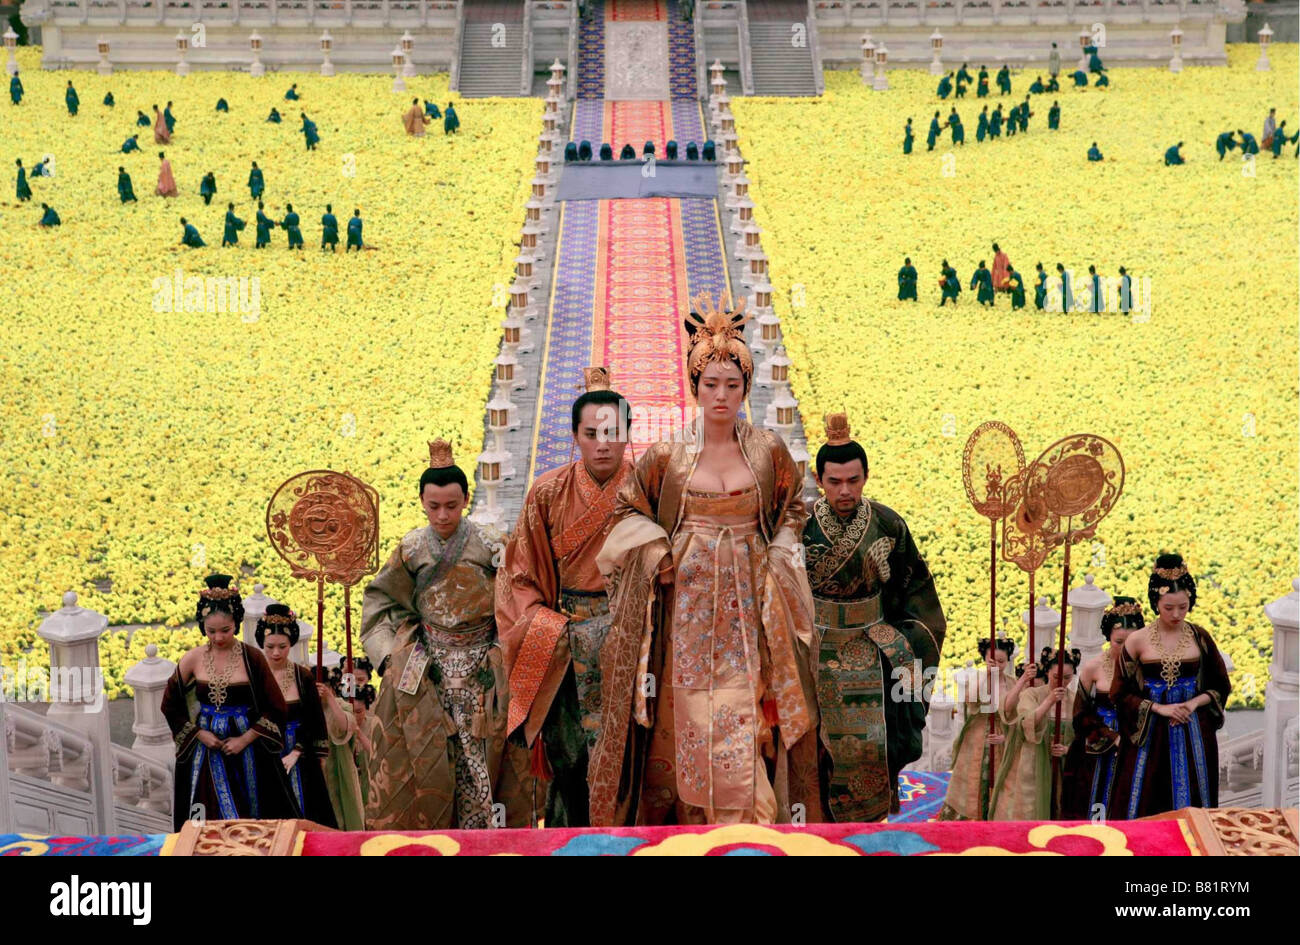 Man cheng jin dai huang jin jia curse of the golden flower year man cheng jin dai huang jin jia curse of the golden flower year 2006 hong kong china qin junjie ye liu gong li jay chou director zhang yimou mightylinksfo